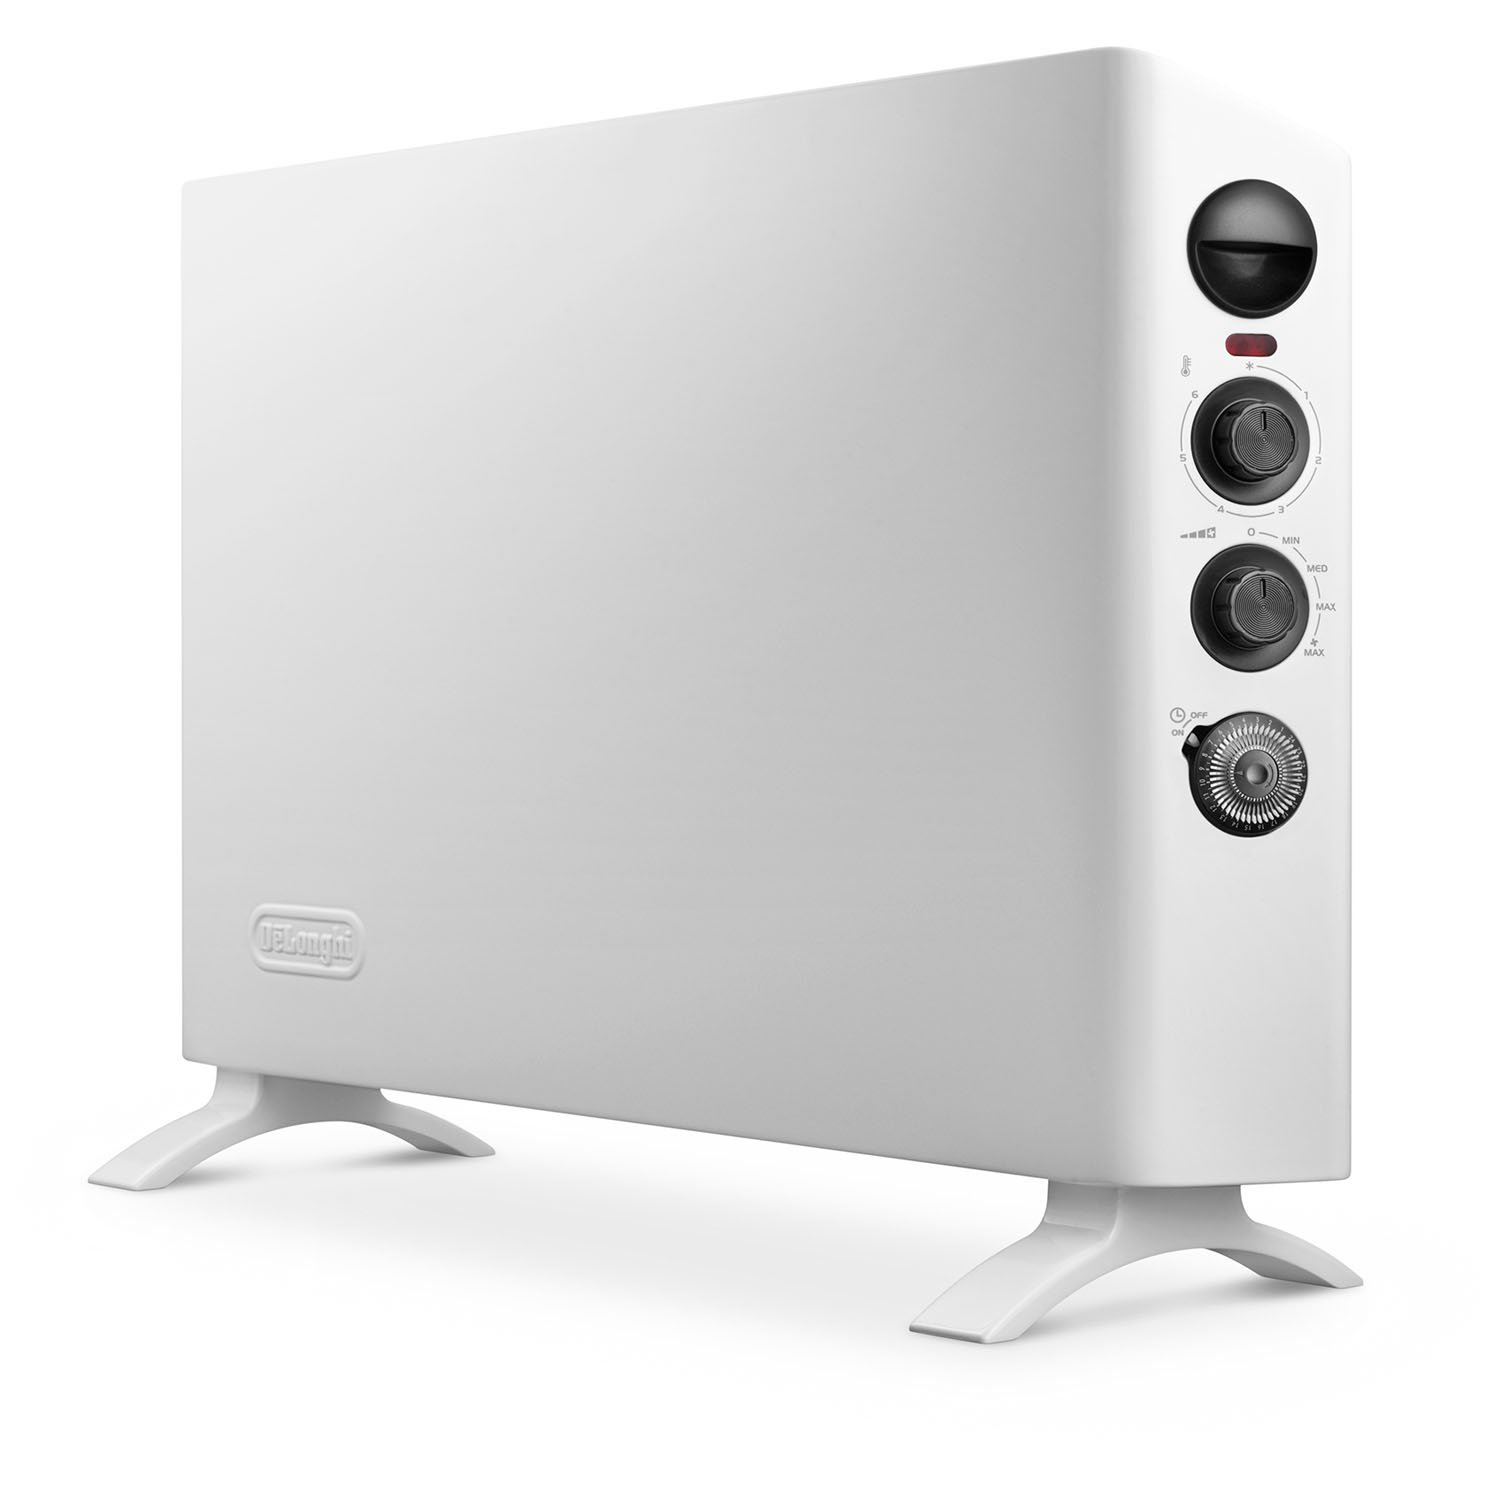 DeLonghi HSX3315FTS Slim Style Digital 1500W Convection Panel Heater with Dual Fan, White